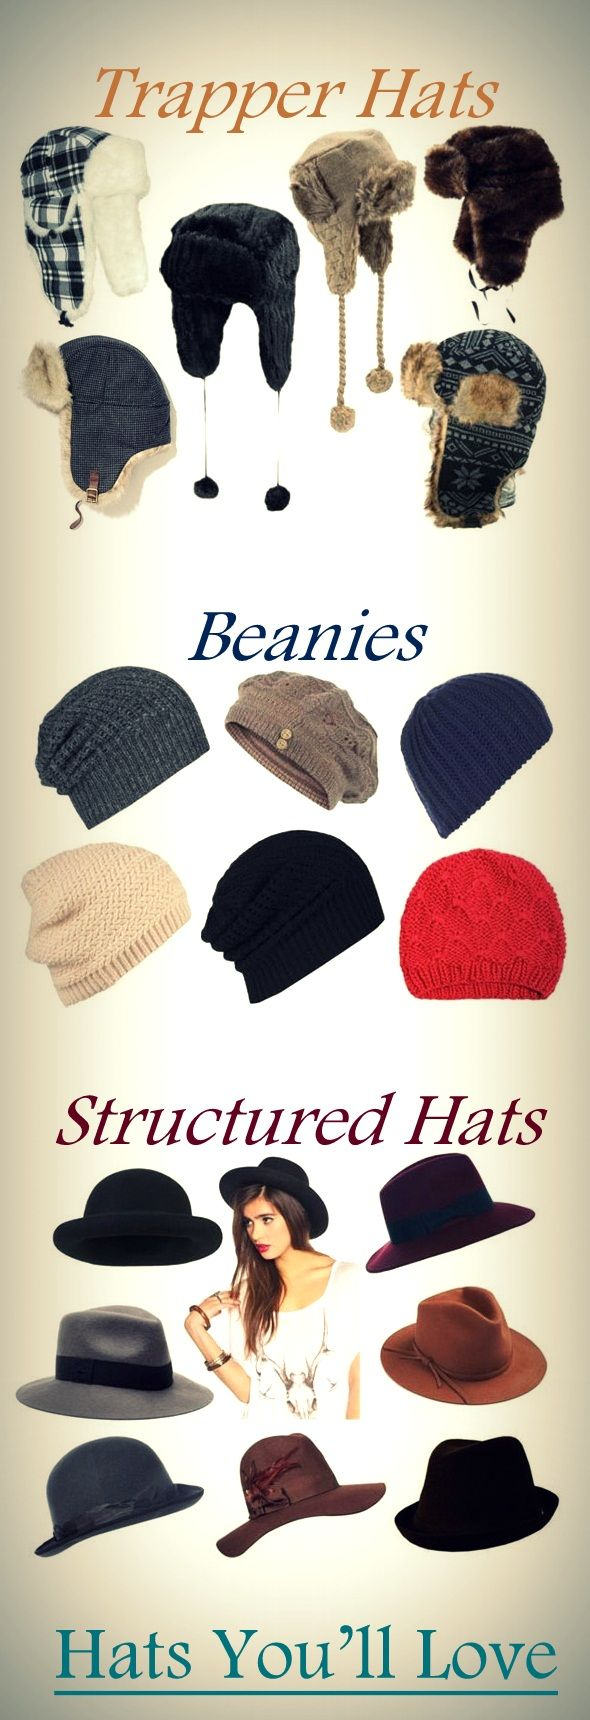 winter hats :) #winter #fashion #style - Shop The Top Online Women's Clothing Stores via http://AmericasMall.com/categories/womens-wear.html